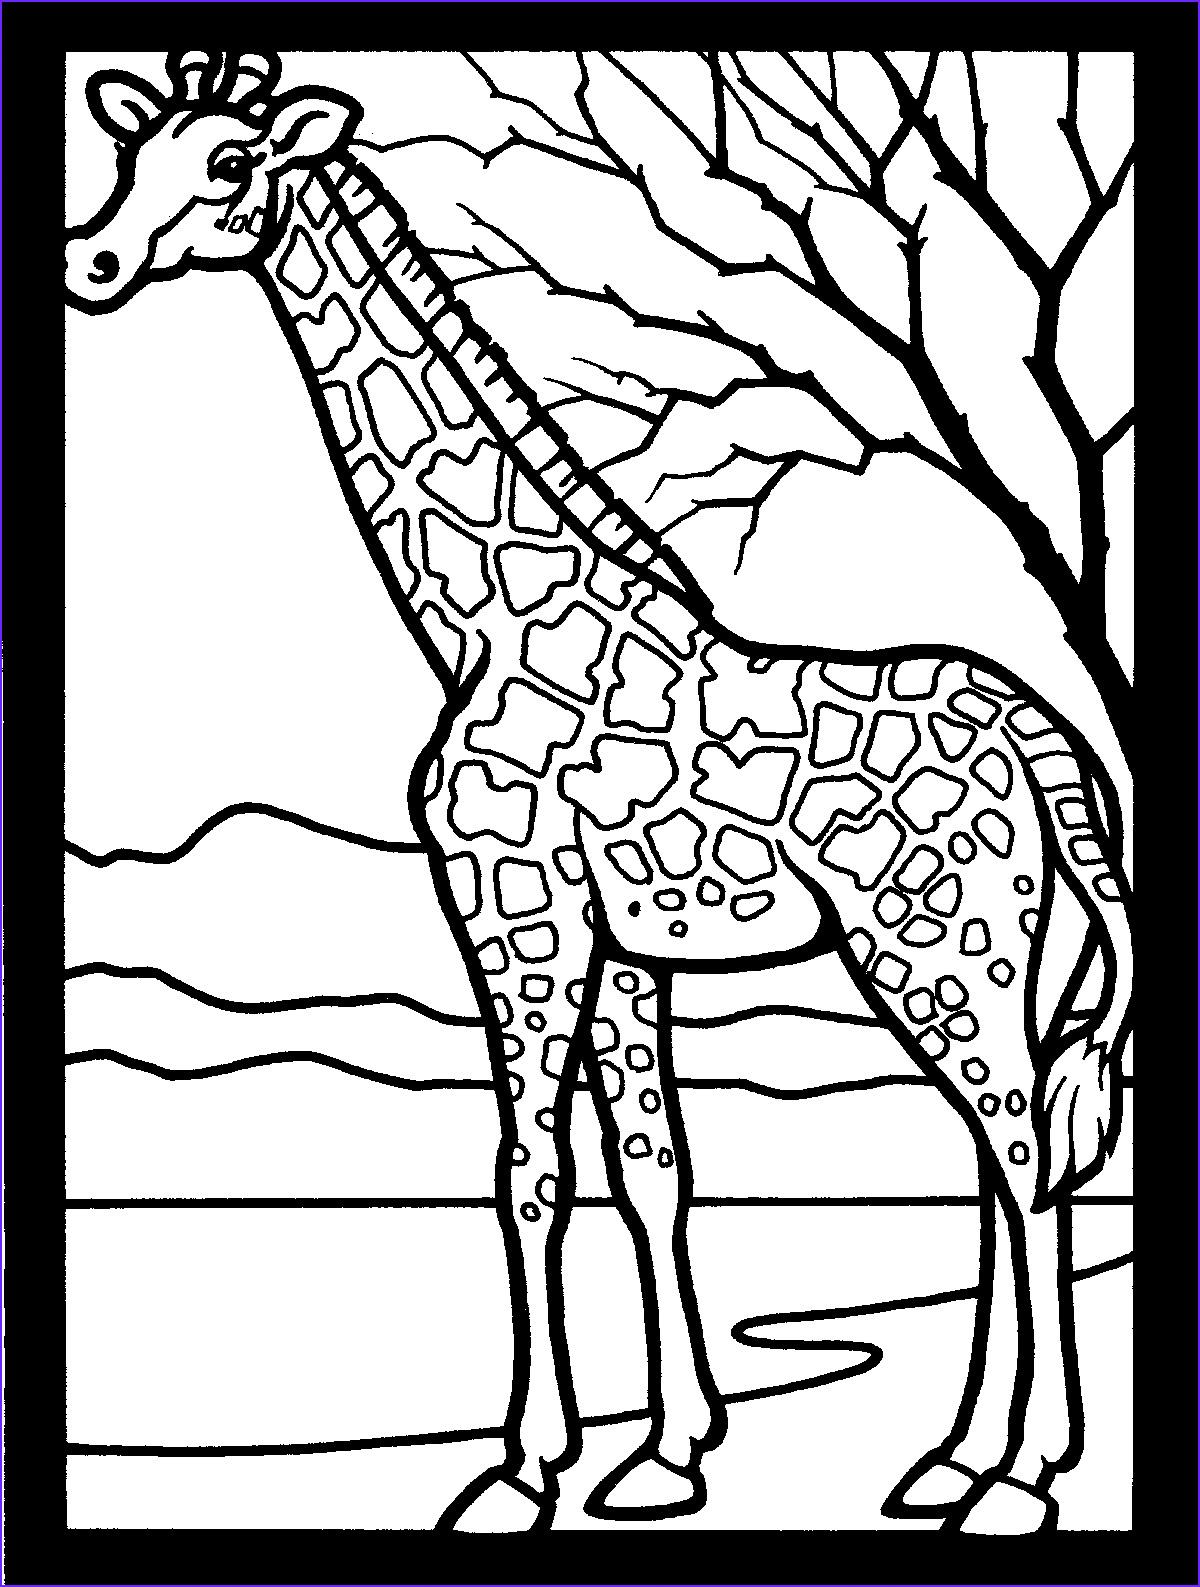 Giraffe Coloring Pictures Best Of Photos Free Printable Giraffe Coloring Pages for Kids